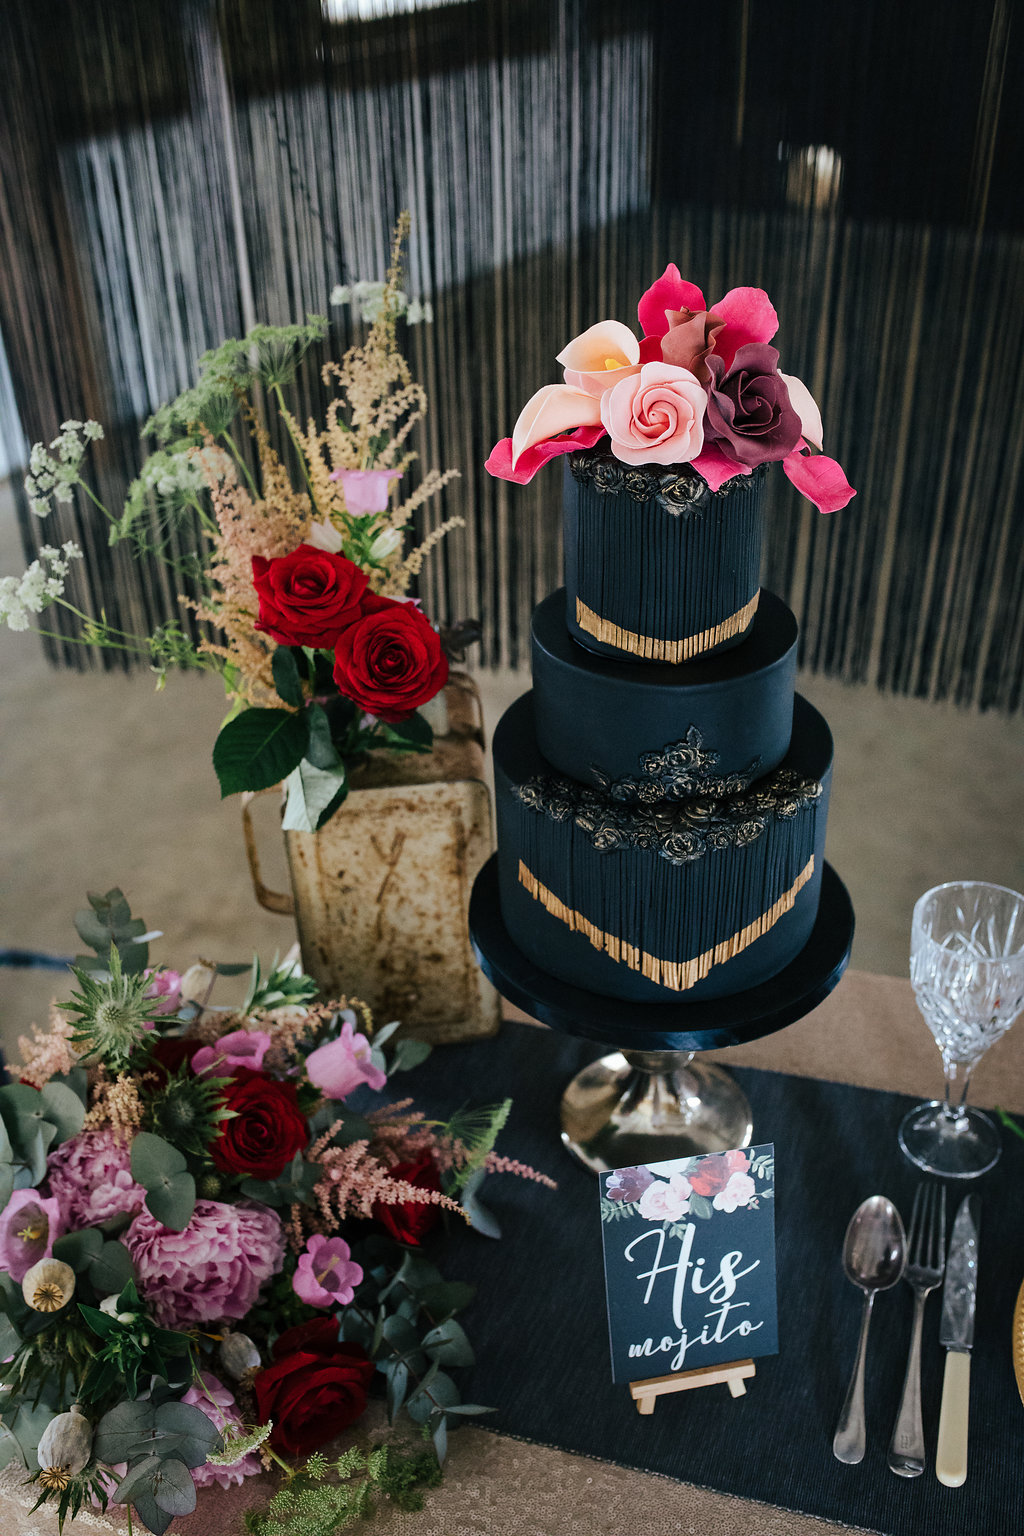 Black tasselled wedding cake with sugar flowers